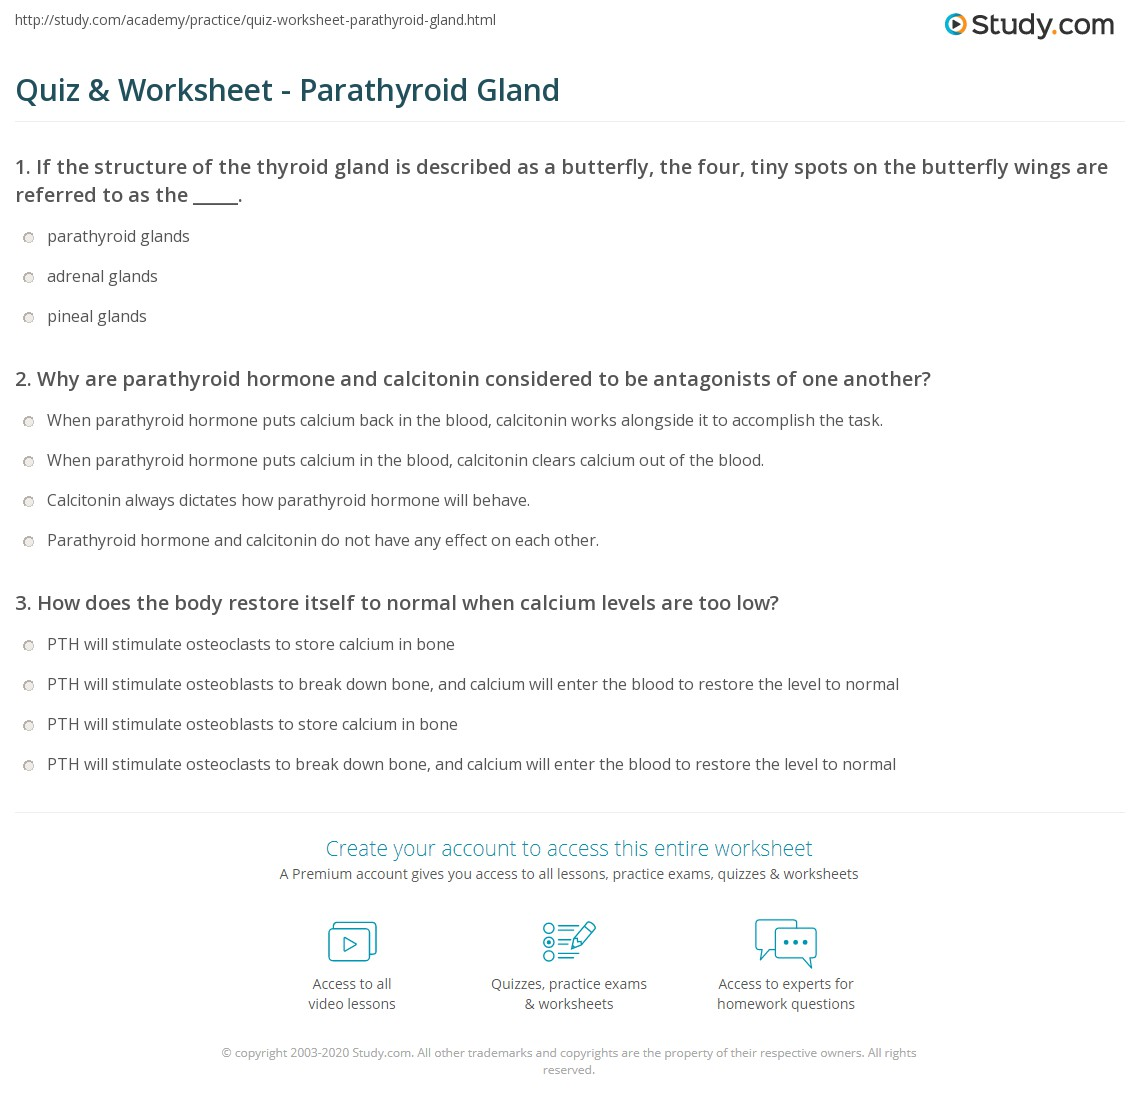 Quiz & Worksheet - Parathyroid Gland | Study.com